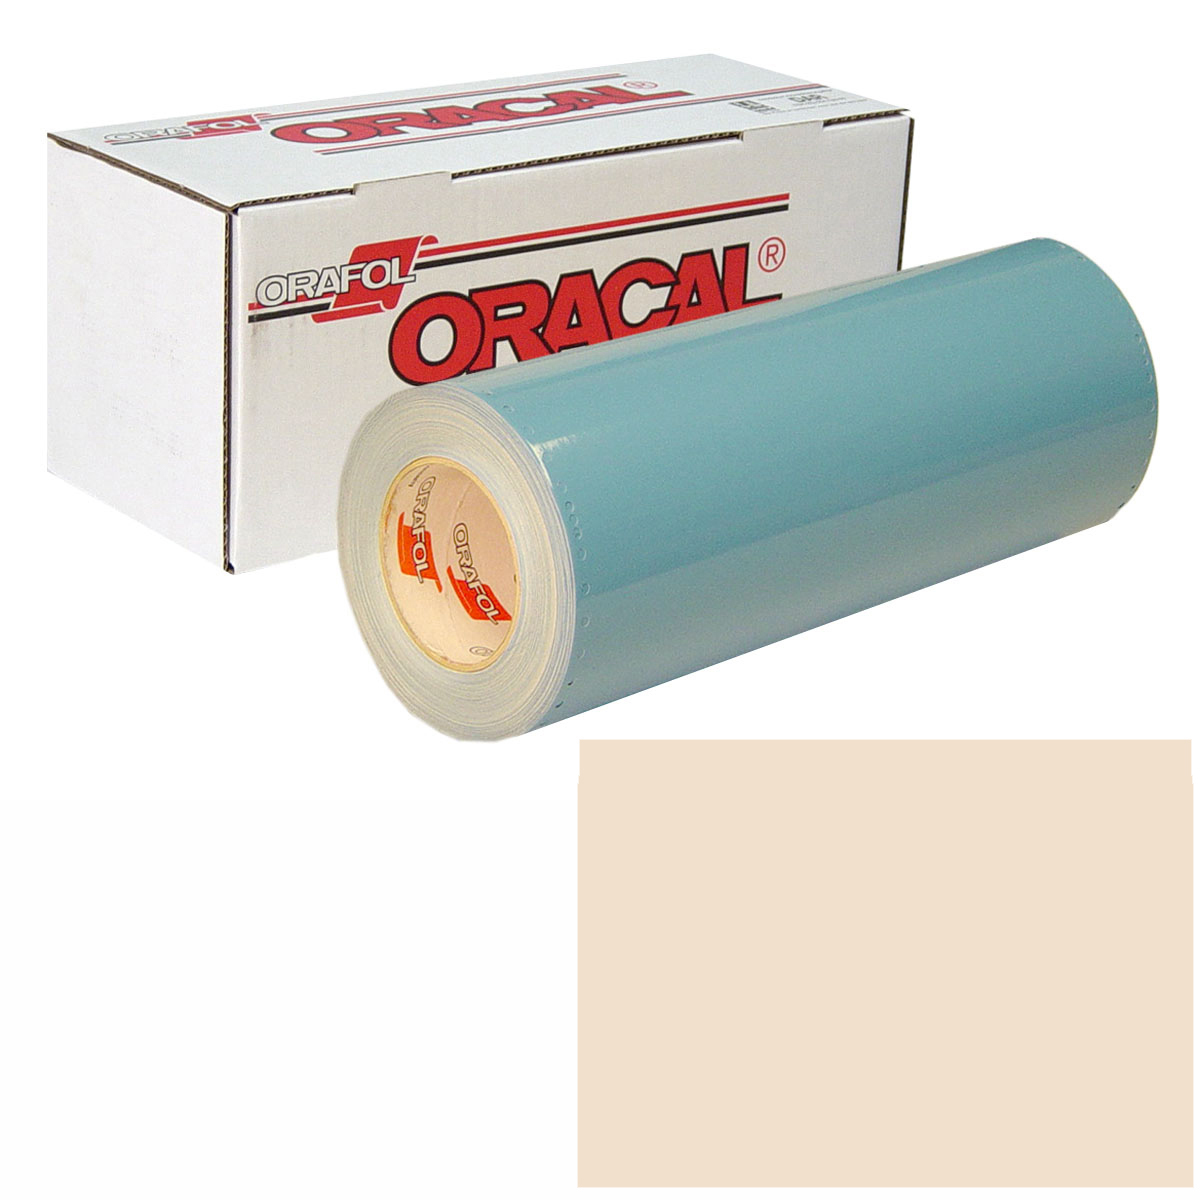 ORACAL 751 30in X 10yd 018 Light Ivory